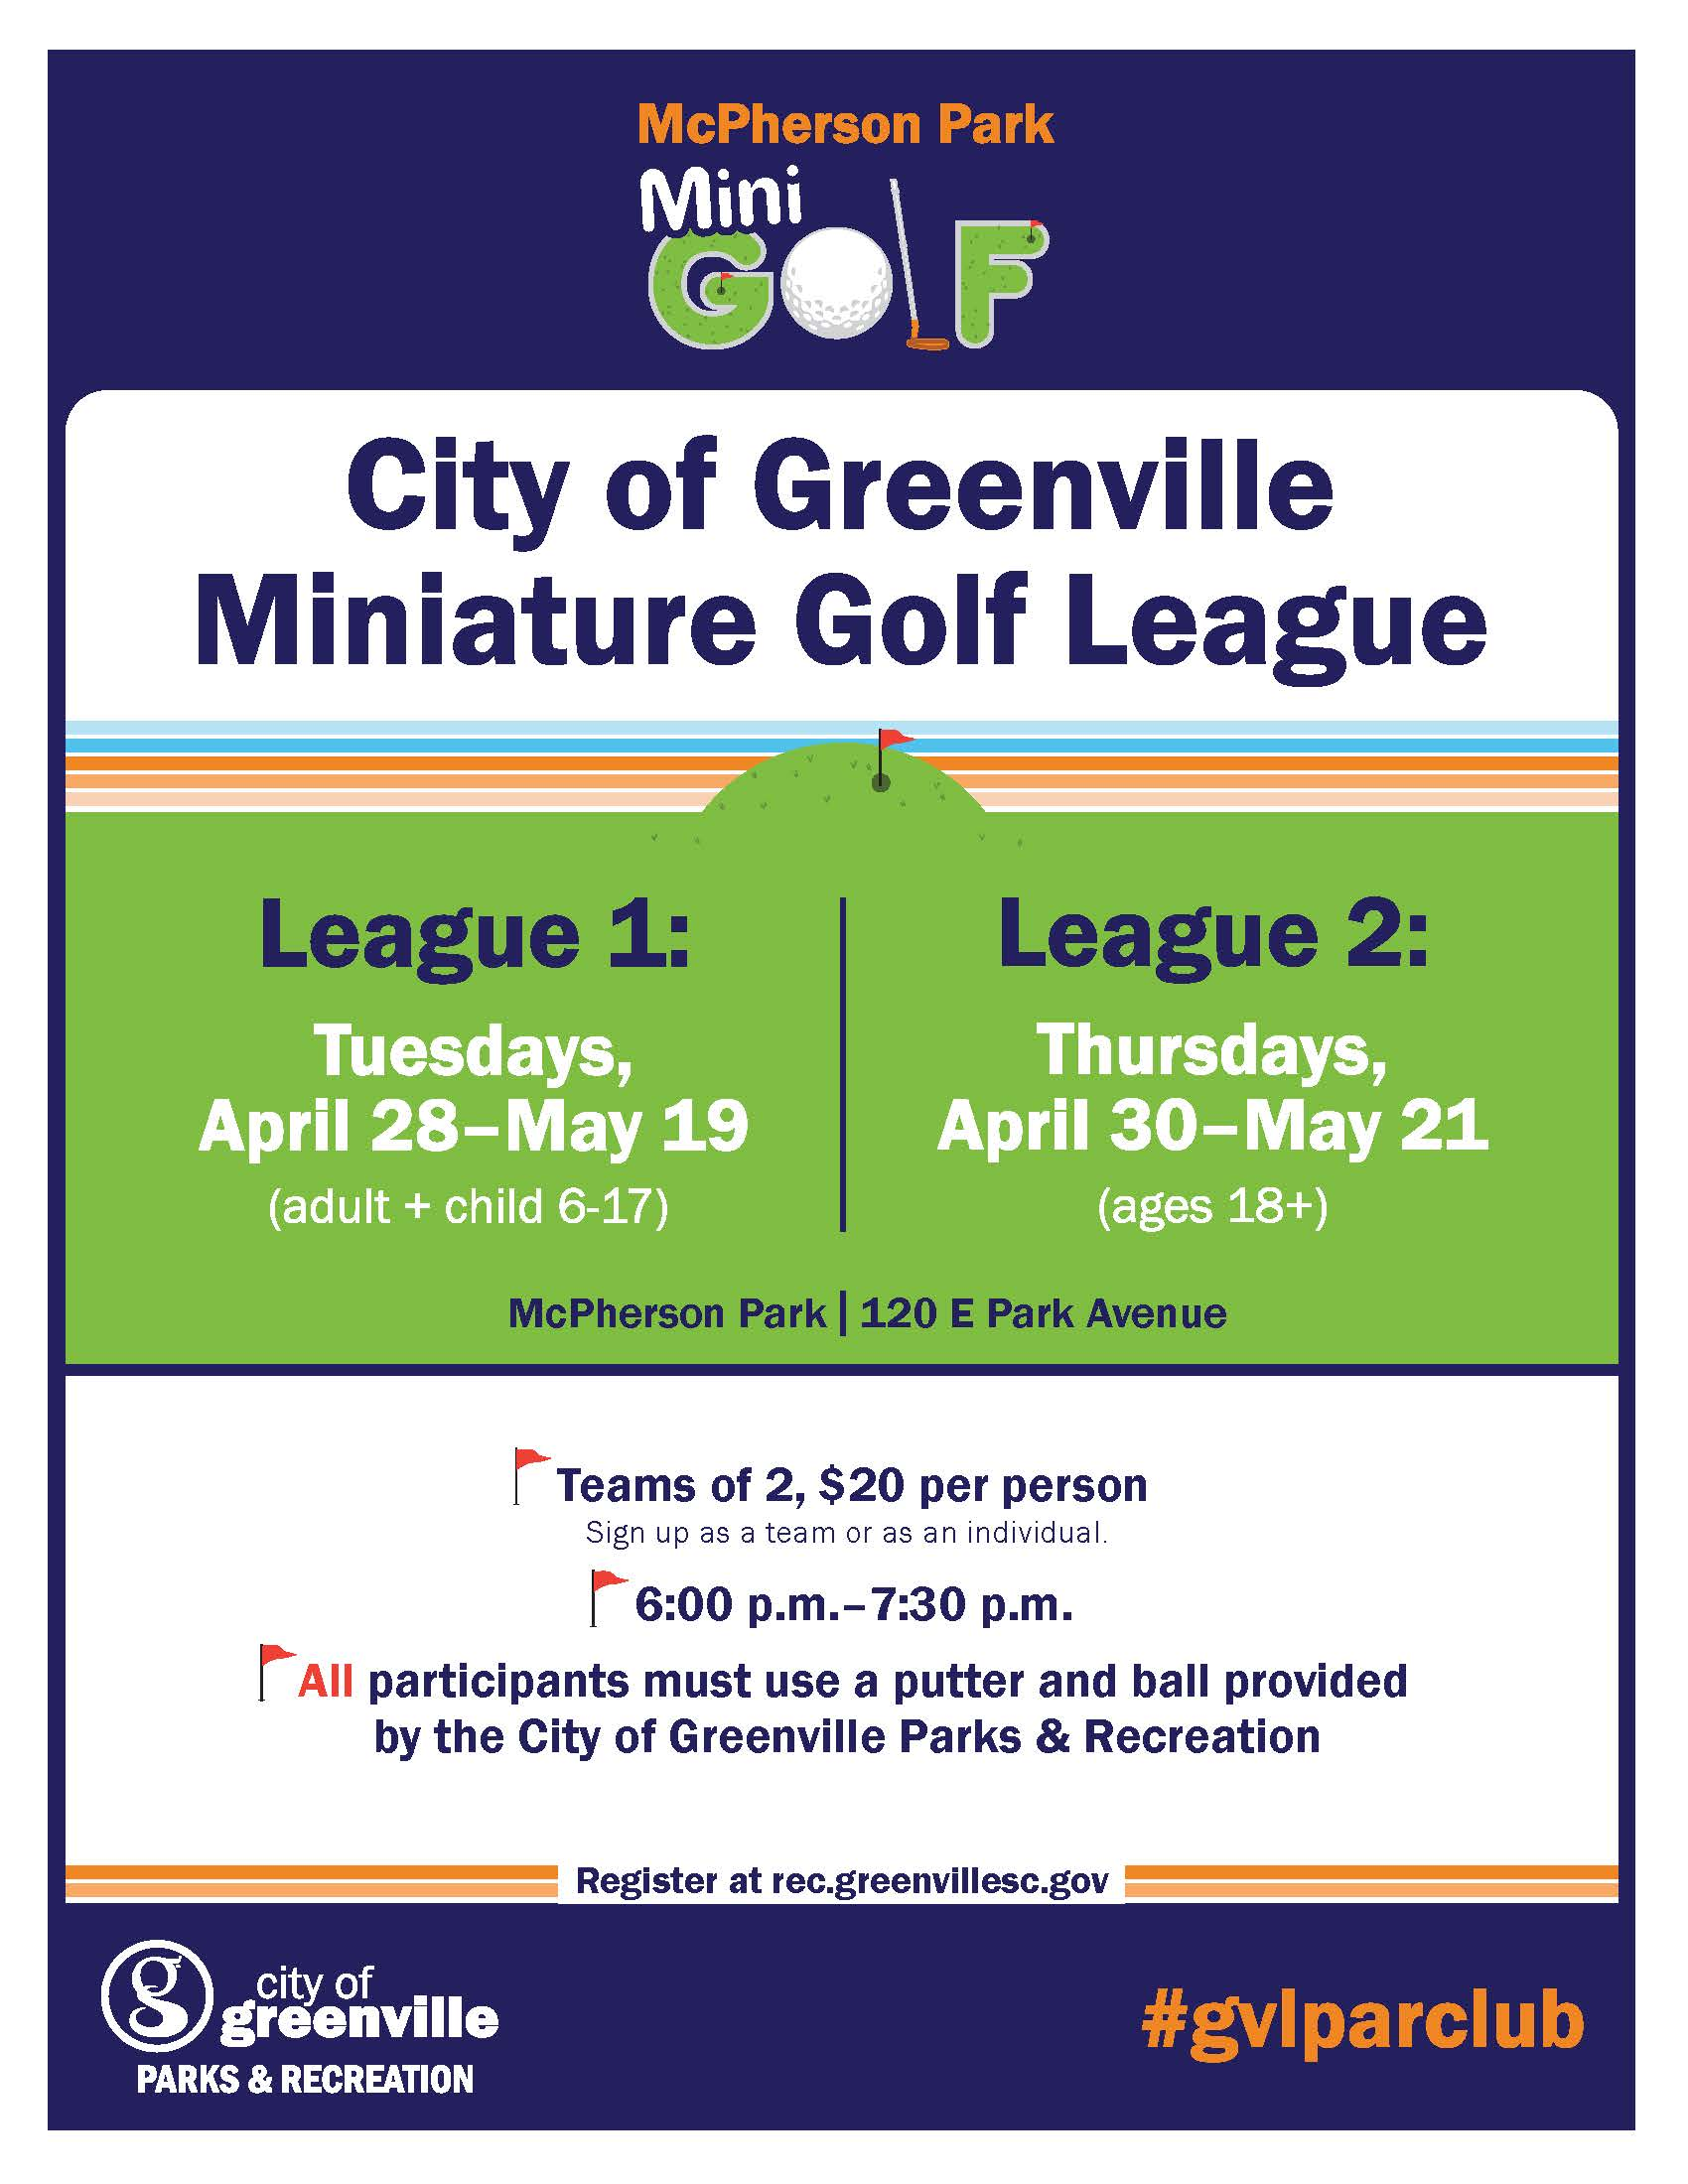 minigolf-league-flyer April 2020